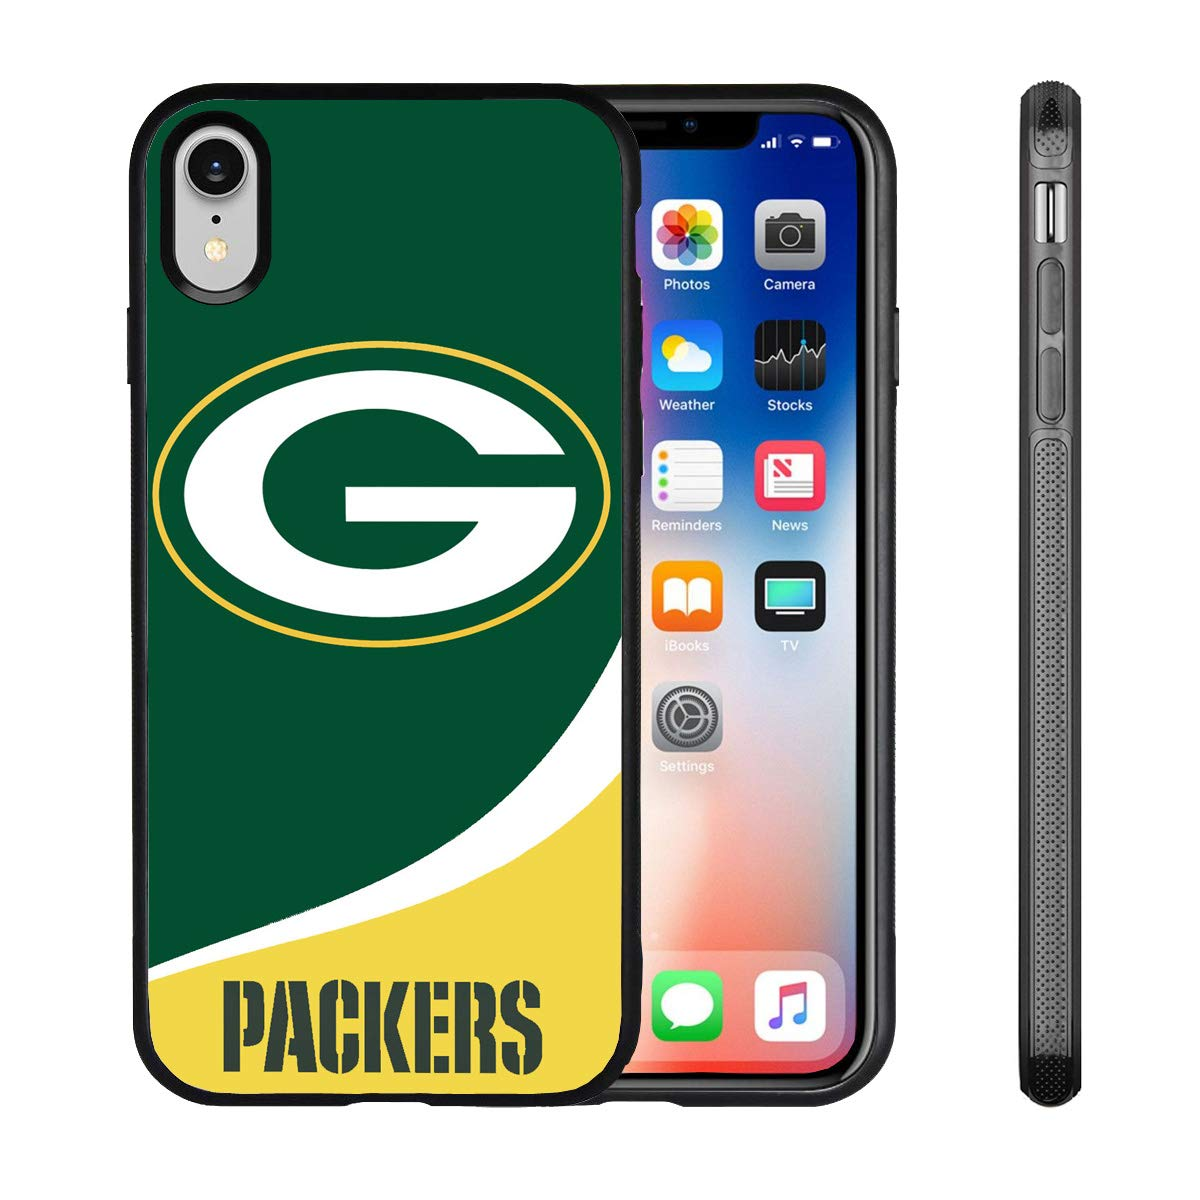 iPhone XR Case Slim Fit Protective Back Cover Anti-Skid Hybrid Soft Grip Premium TPU Rubber Shockproof Anti-Scratch Textured Panel Shell for iPhone XR 6.1-inch